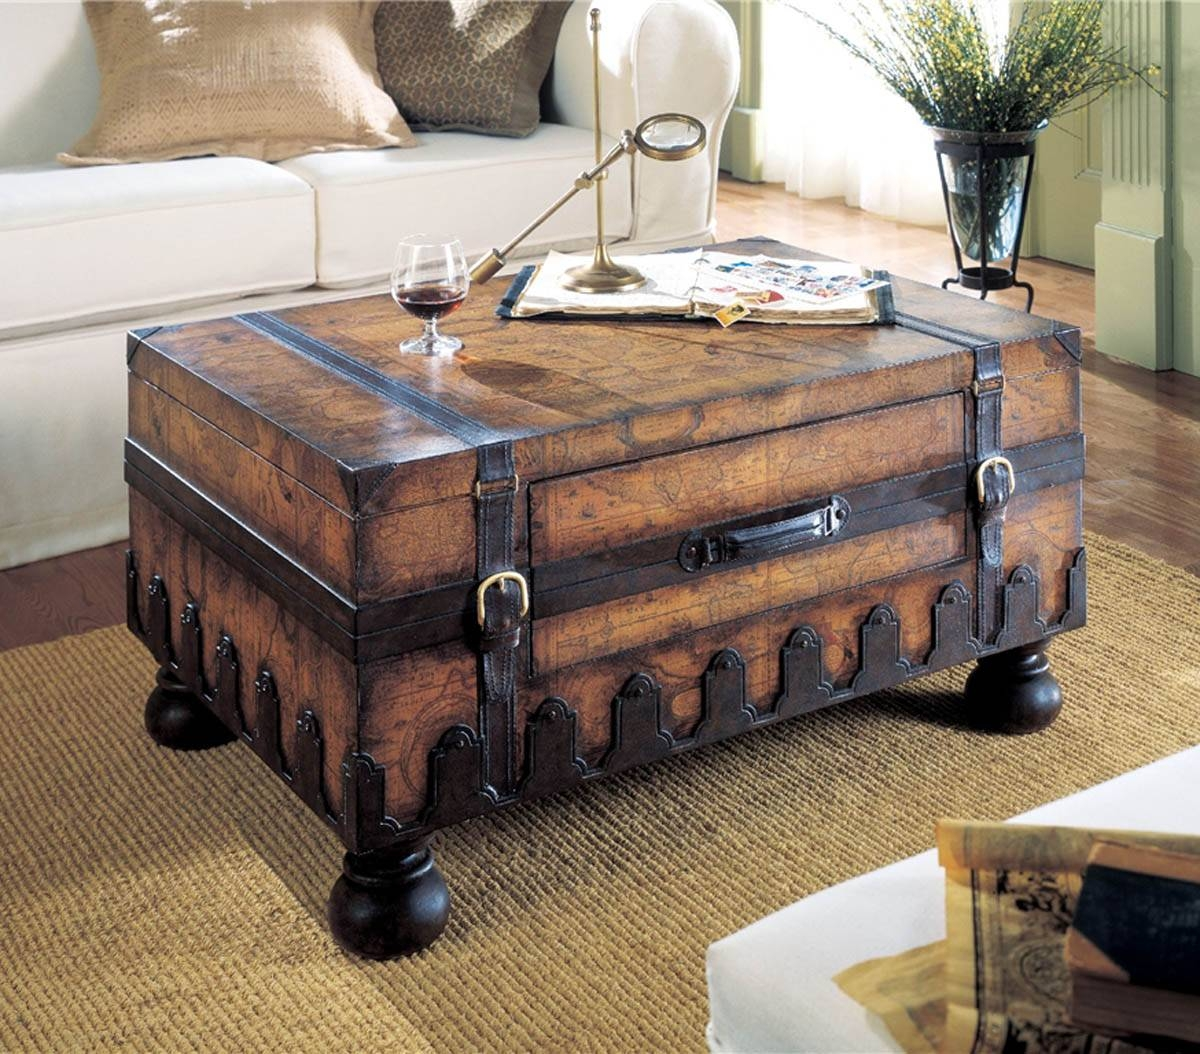 Steamer Trunk Coffee Table Stainless Steel throughout Steamer Trunk Stainless Steel Coffee Tables (Image 22 of 30)